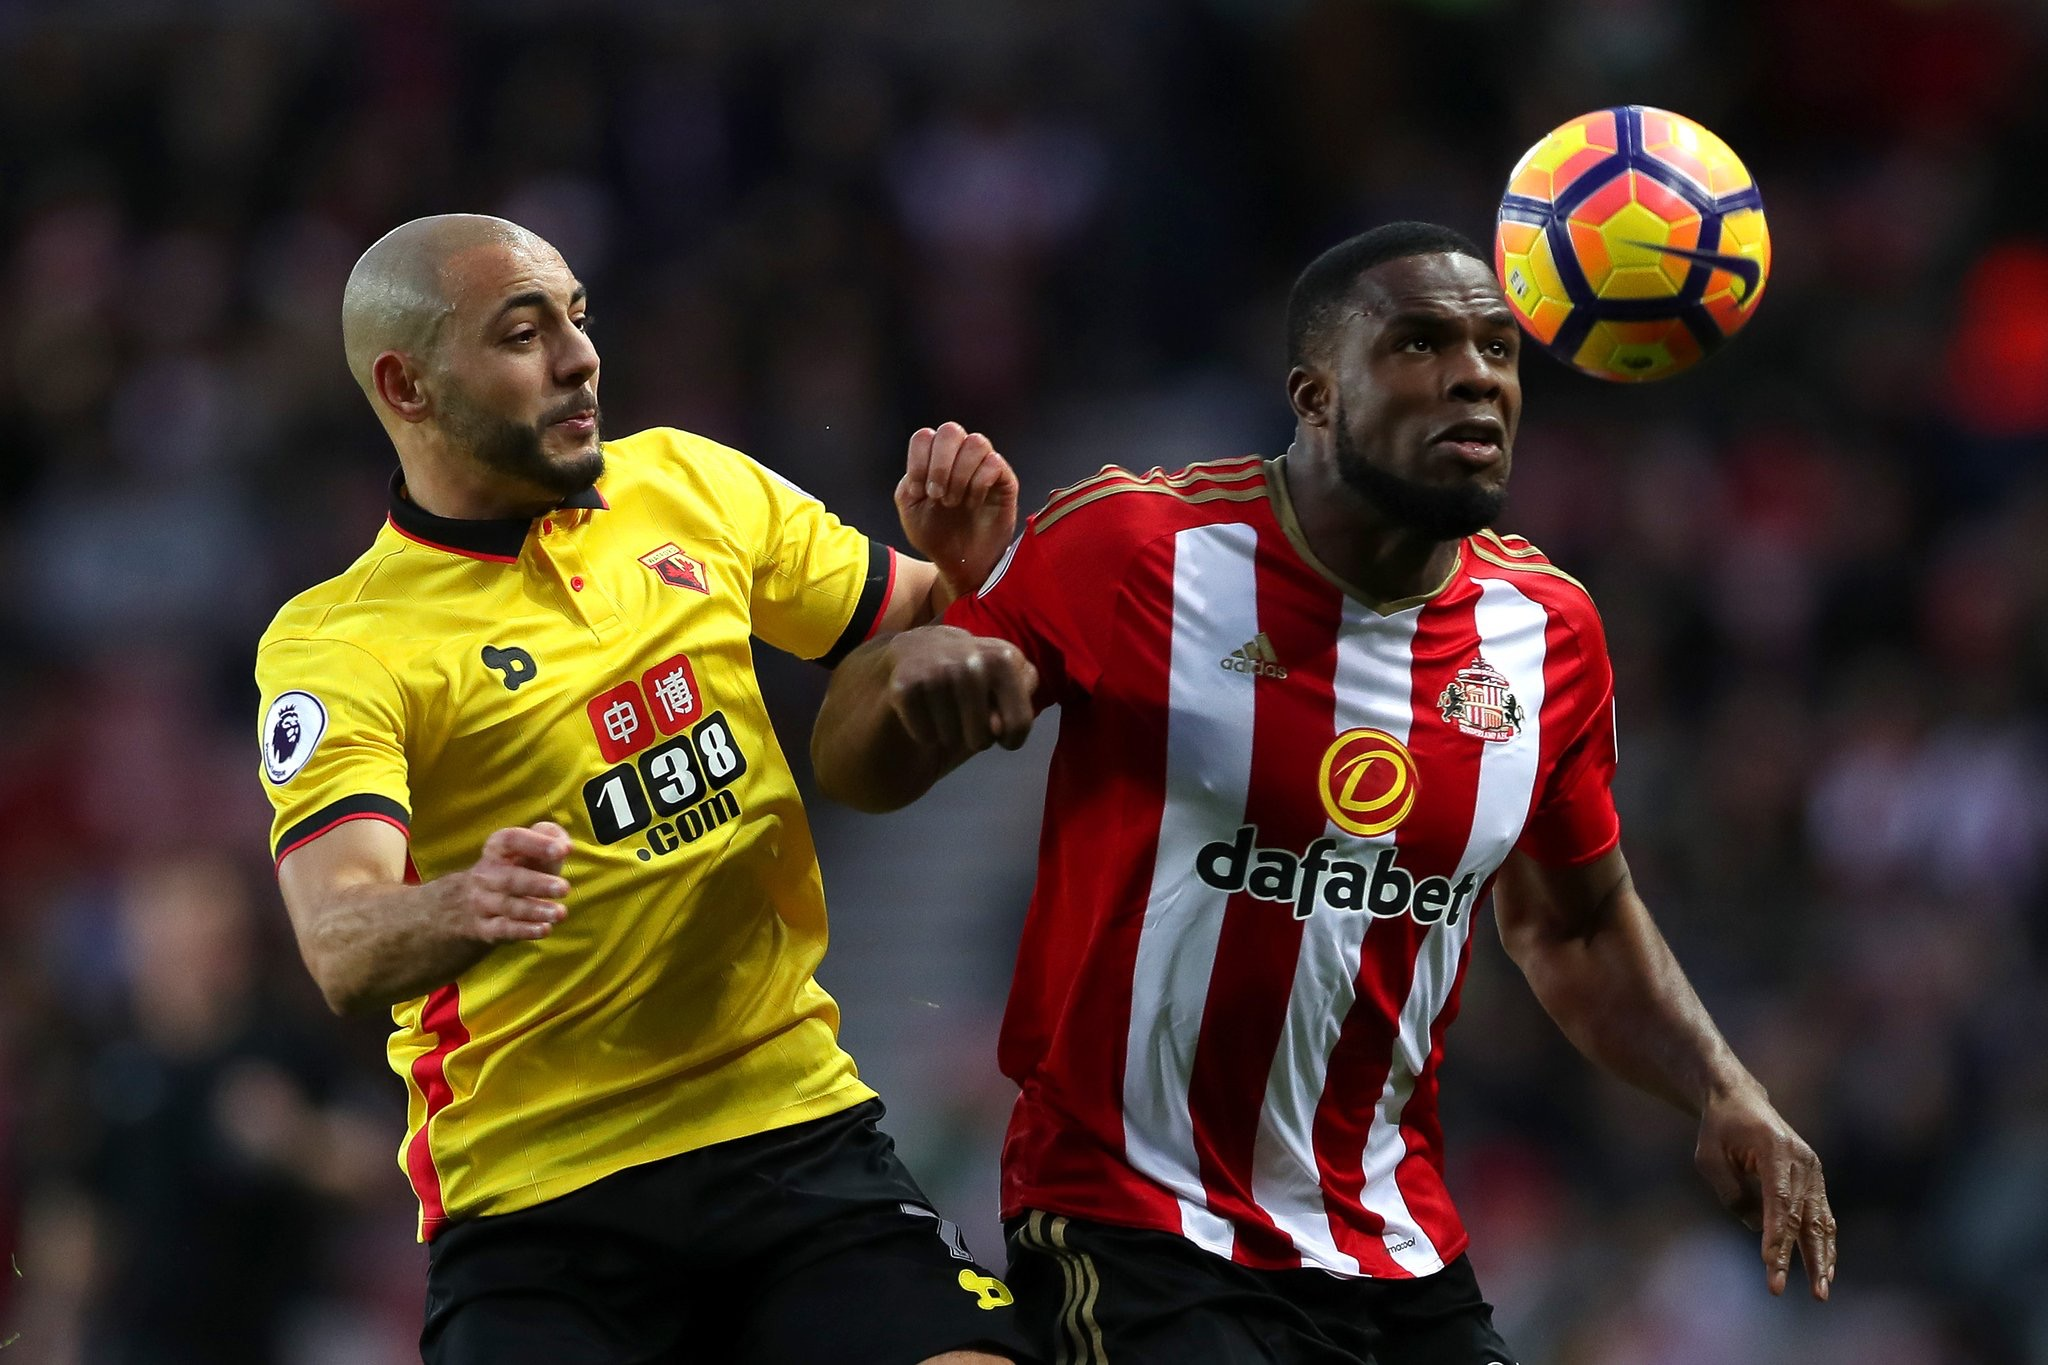 Anichebe Happy To See Sunderland Bounce Back With 'Big Win' Vs Watford